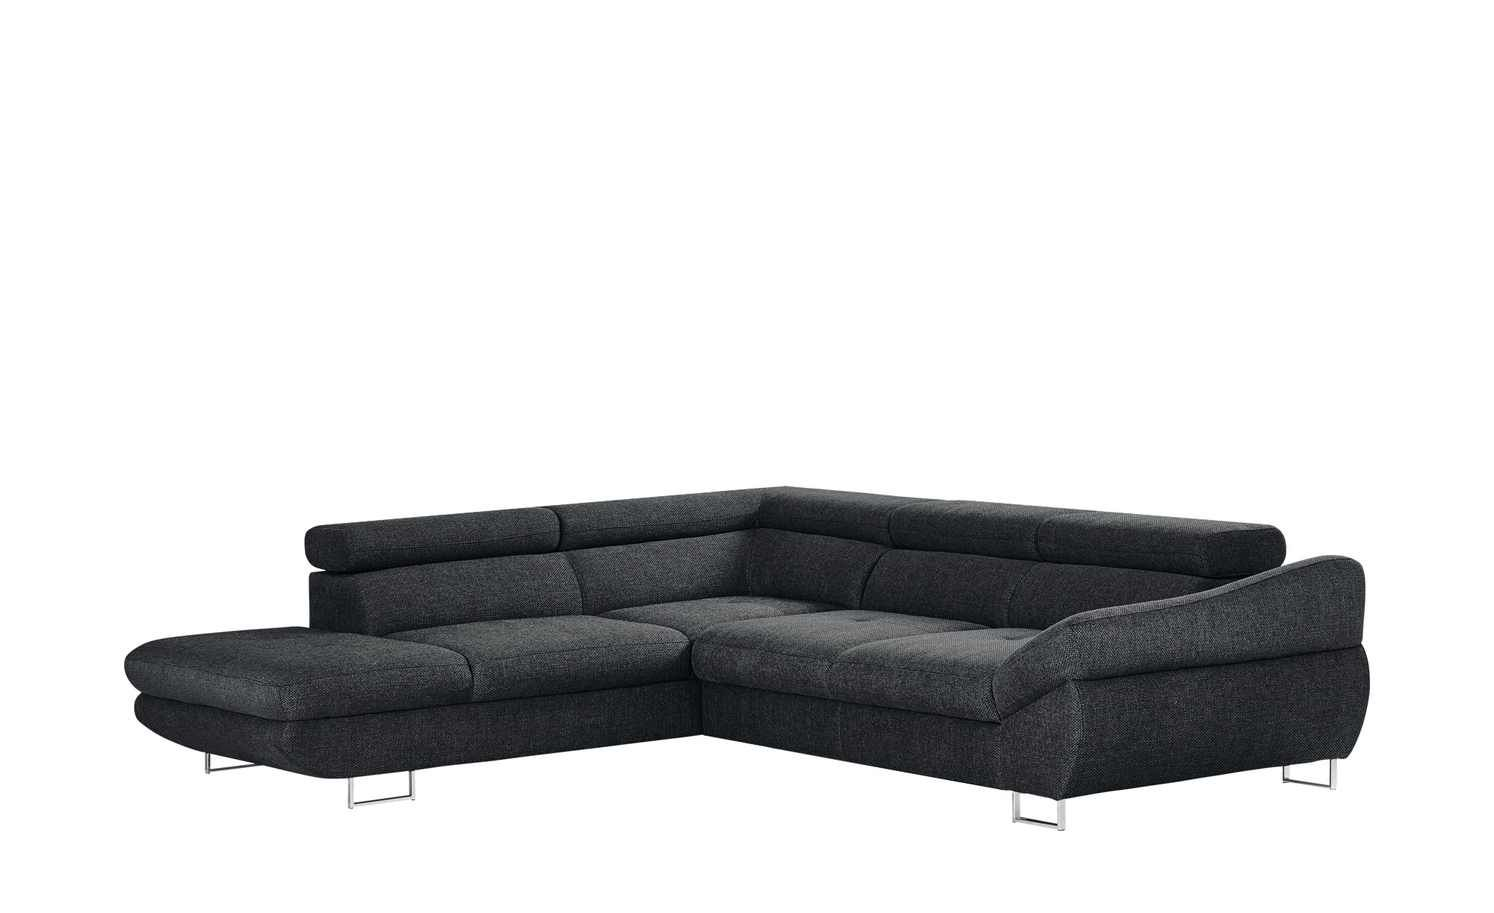 Seats En Sofa Arnhem Switch Ecksofa Grauschwarz Webstoff Fabio In 2019 Sofa Sofa